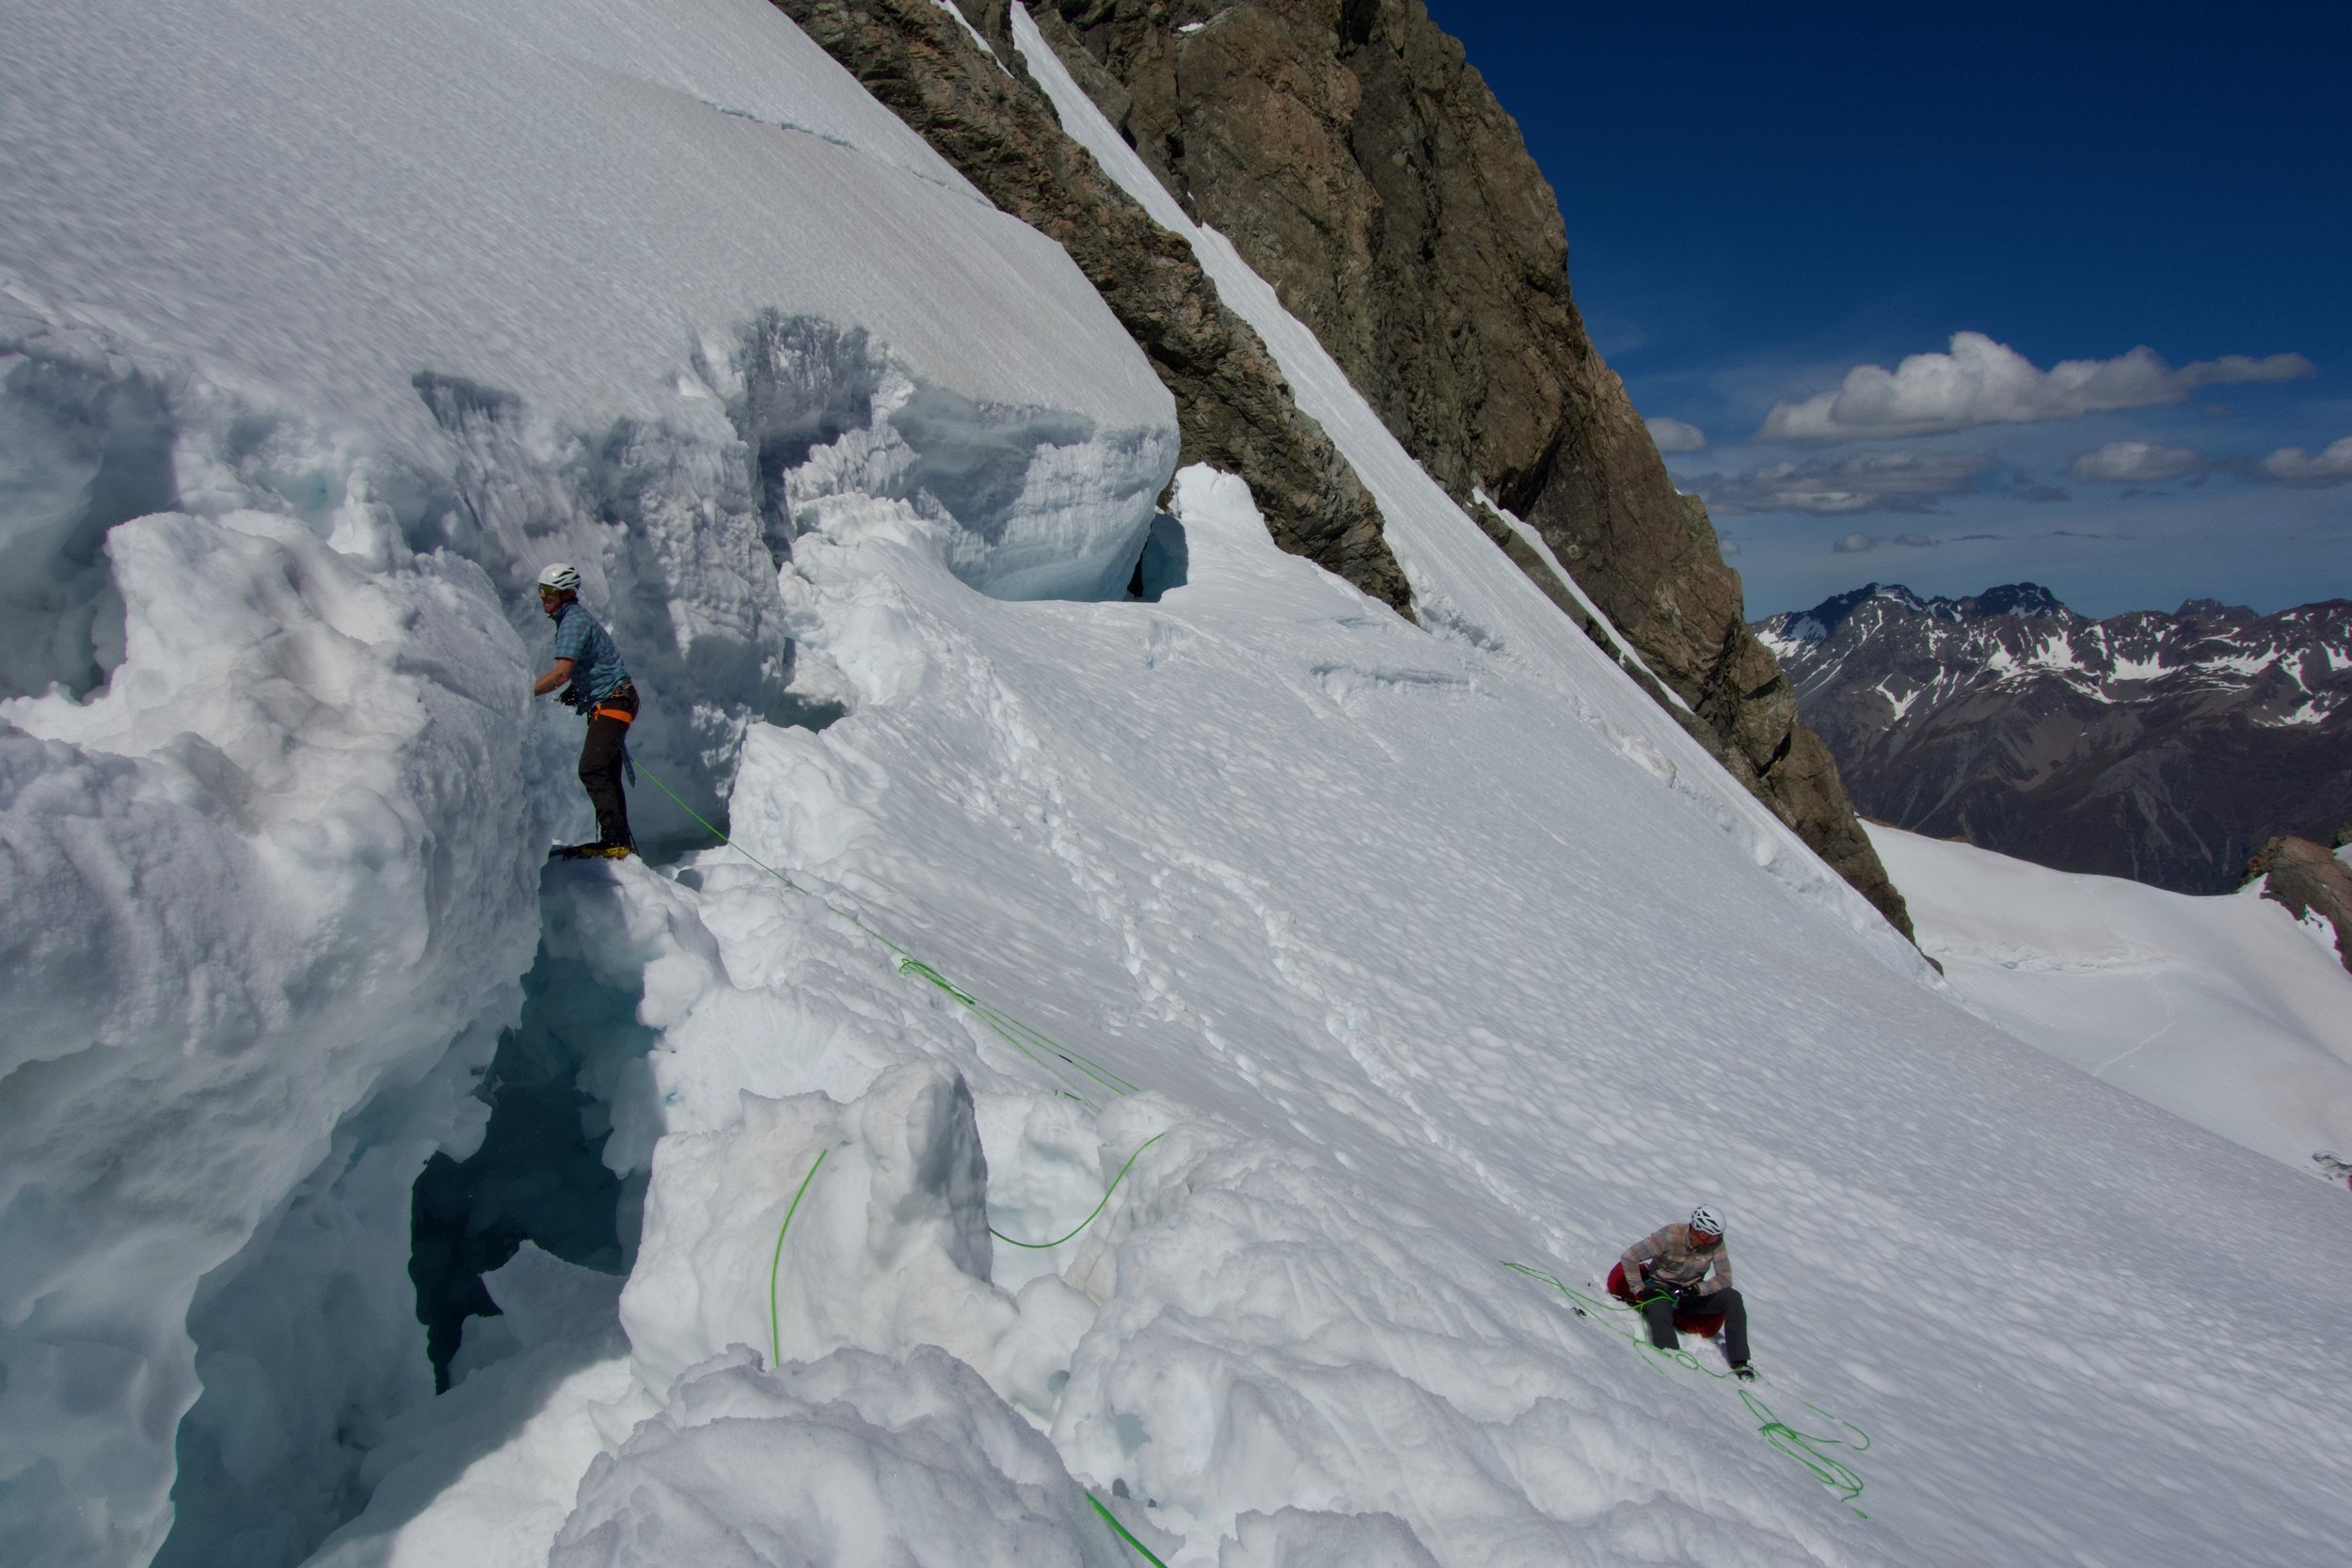 Creating a channel across the bergschrund below Cinerama Col